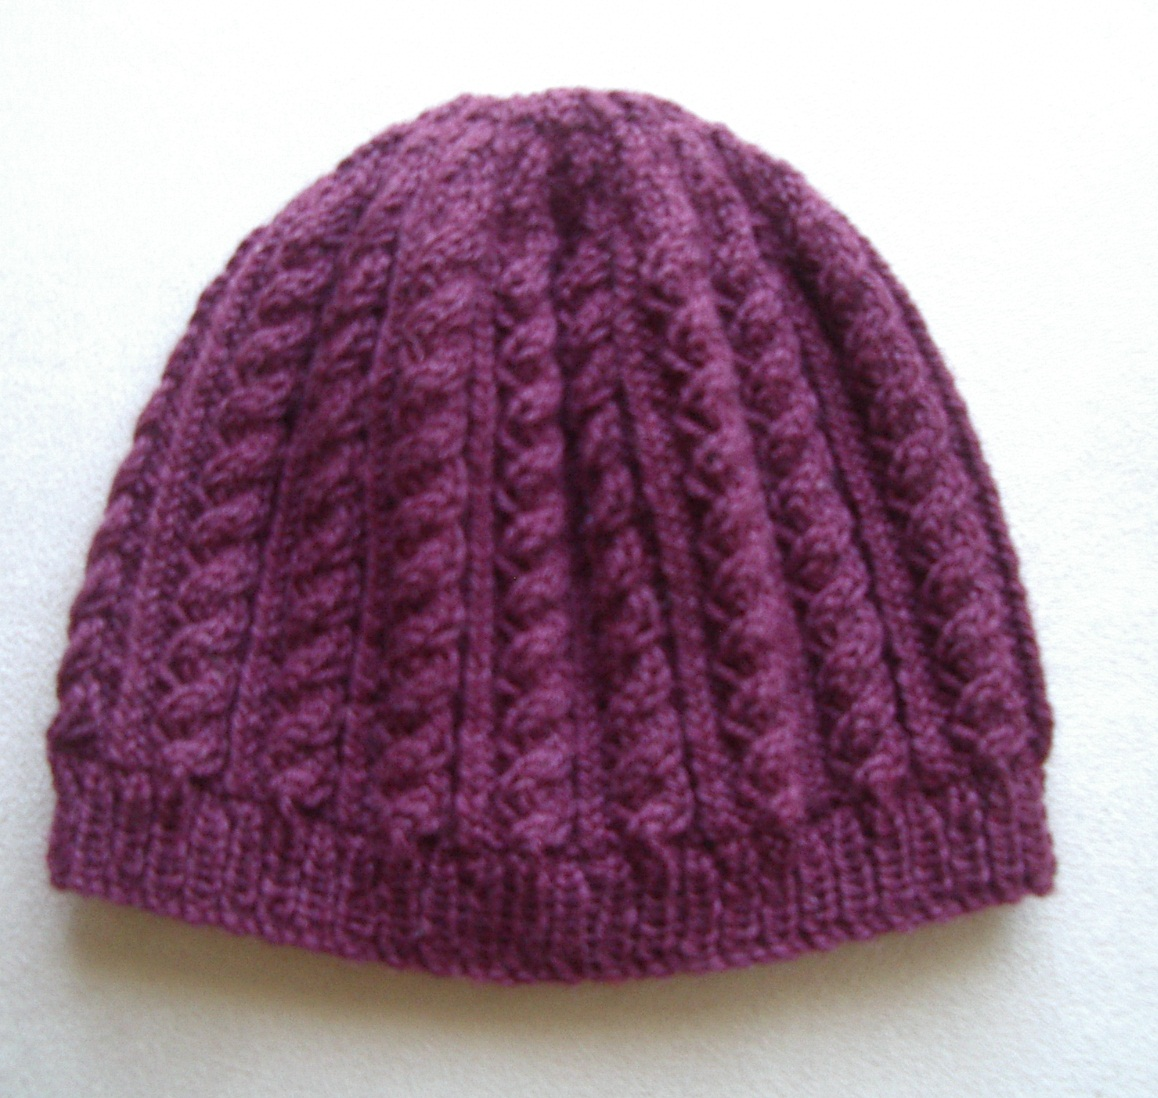 Knitting Patterns Online - Knitted Beanie, Scarf and Headband Patterns